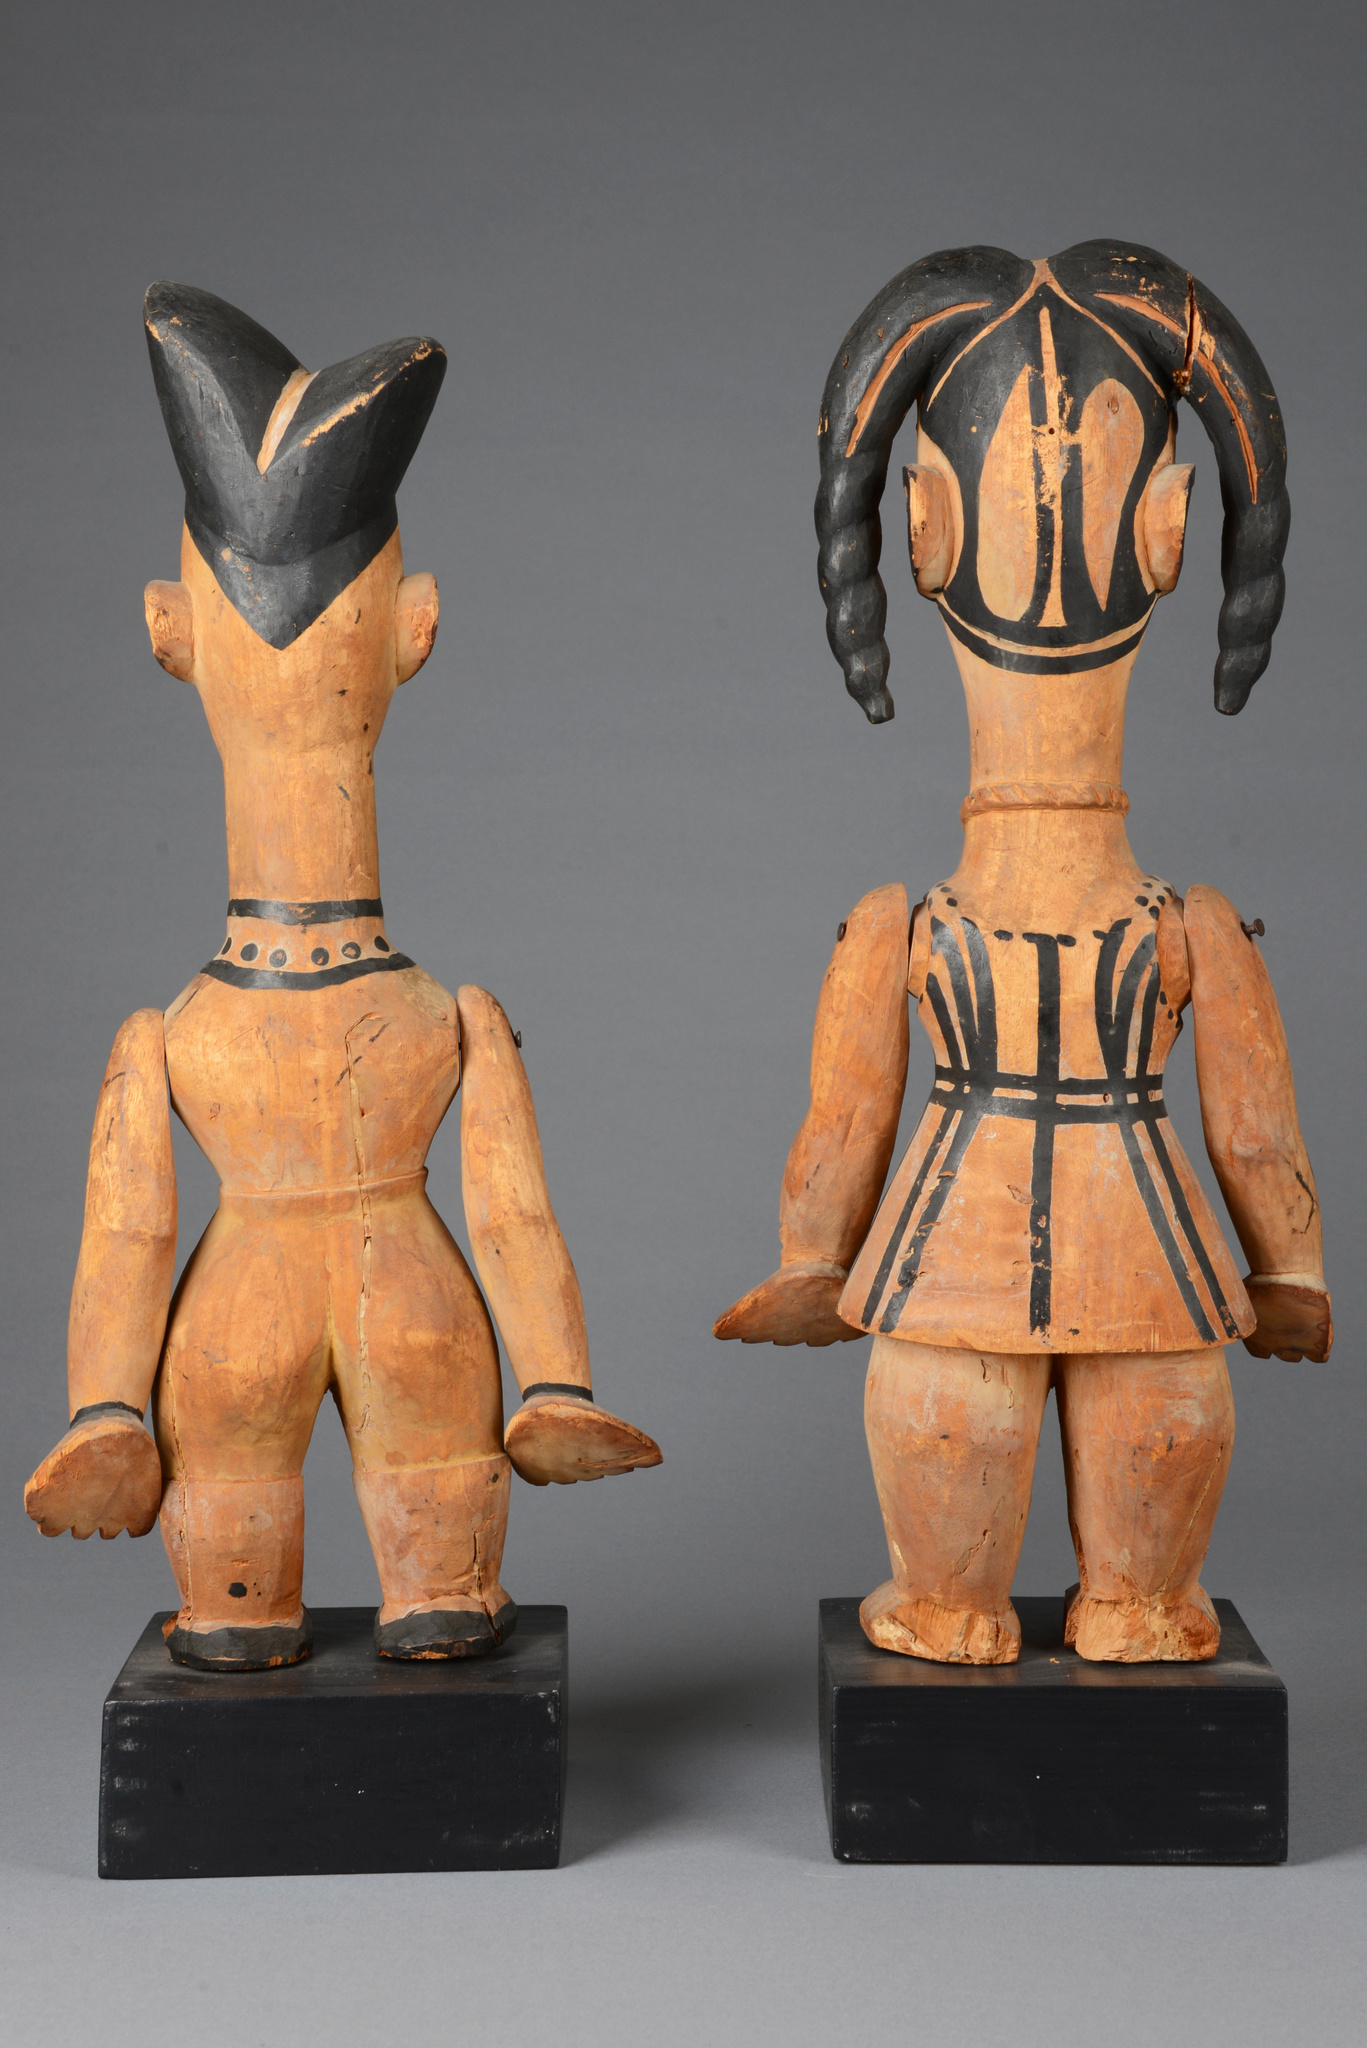 Pair of puppets